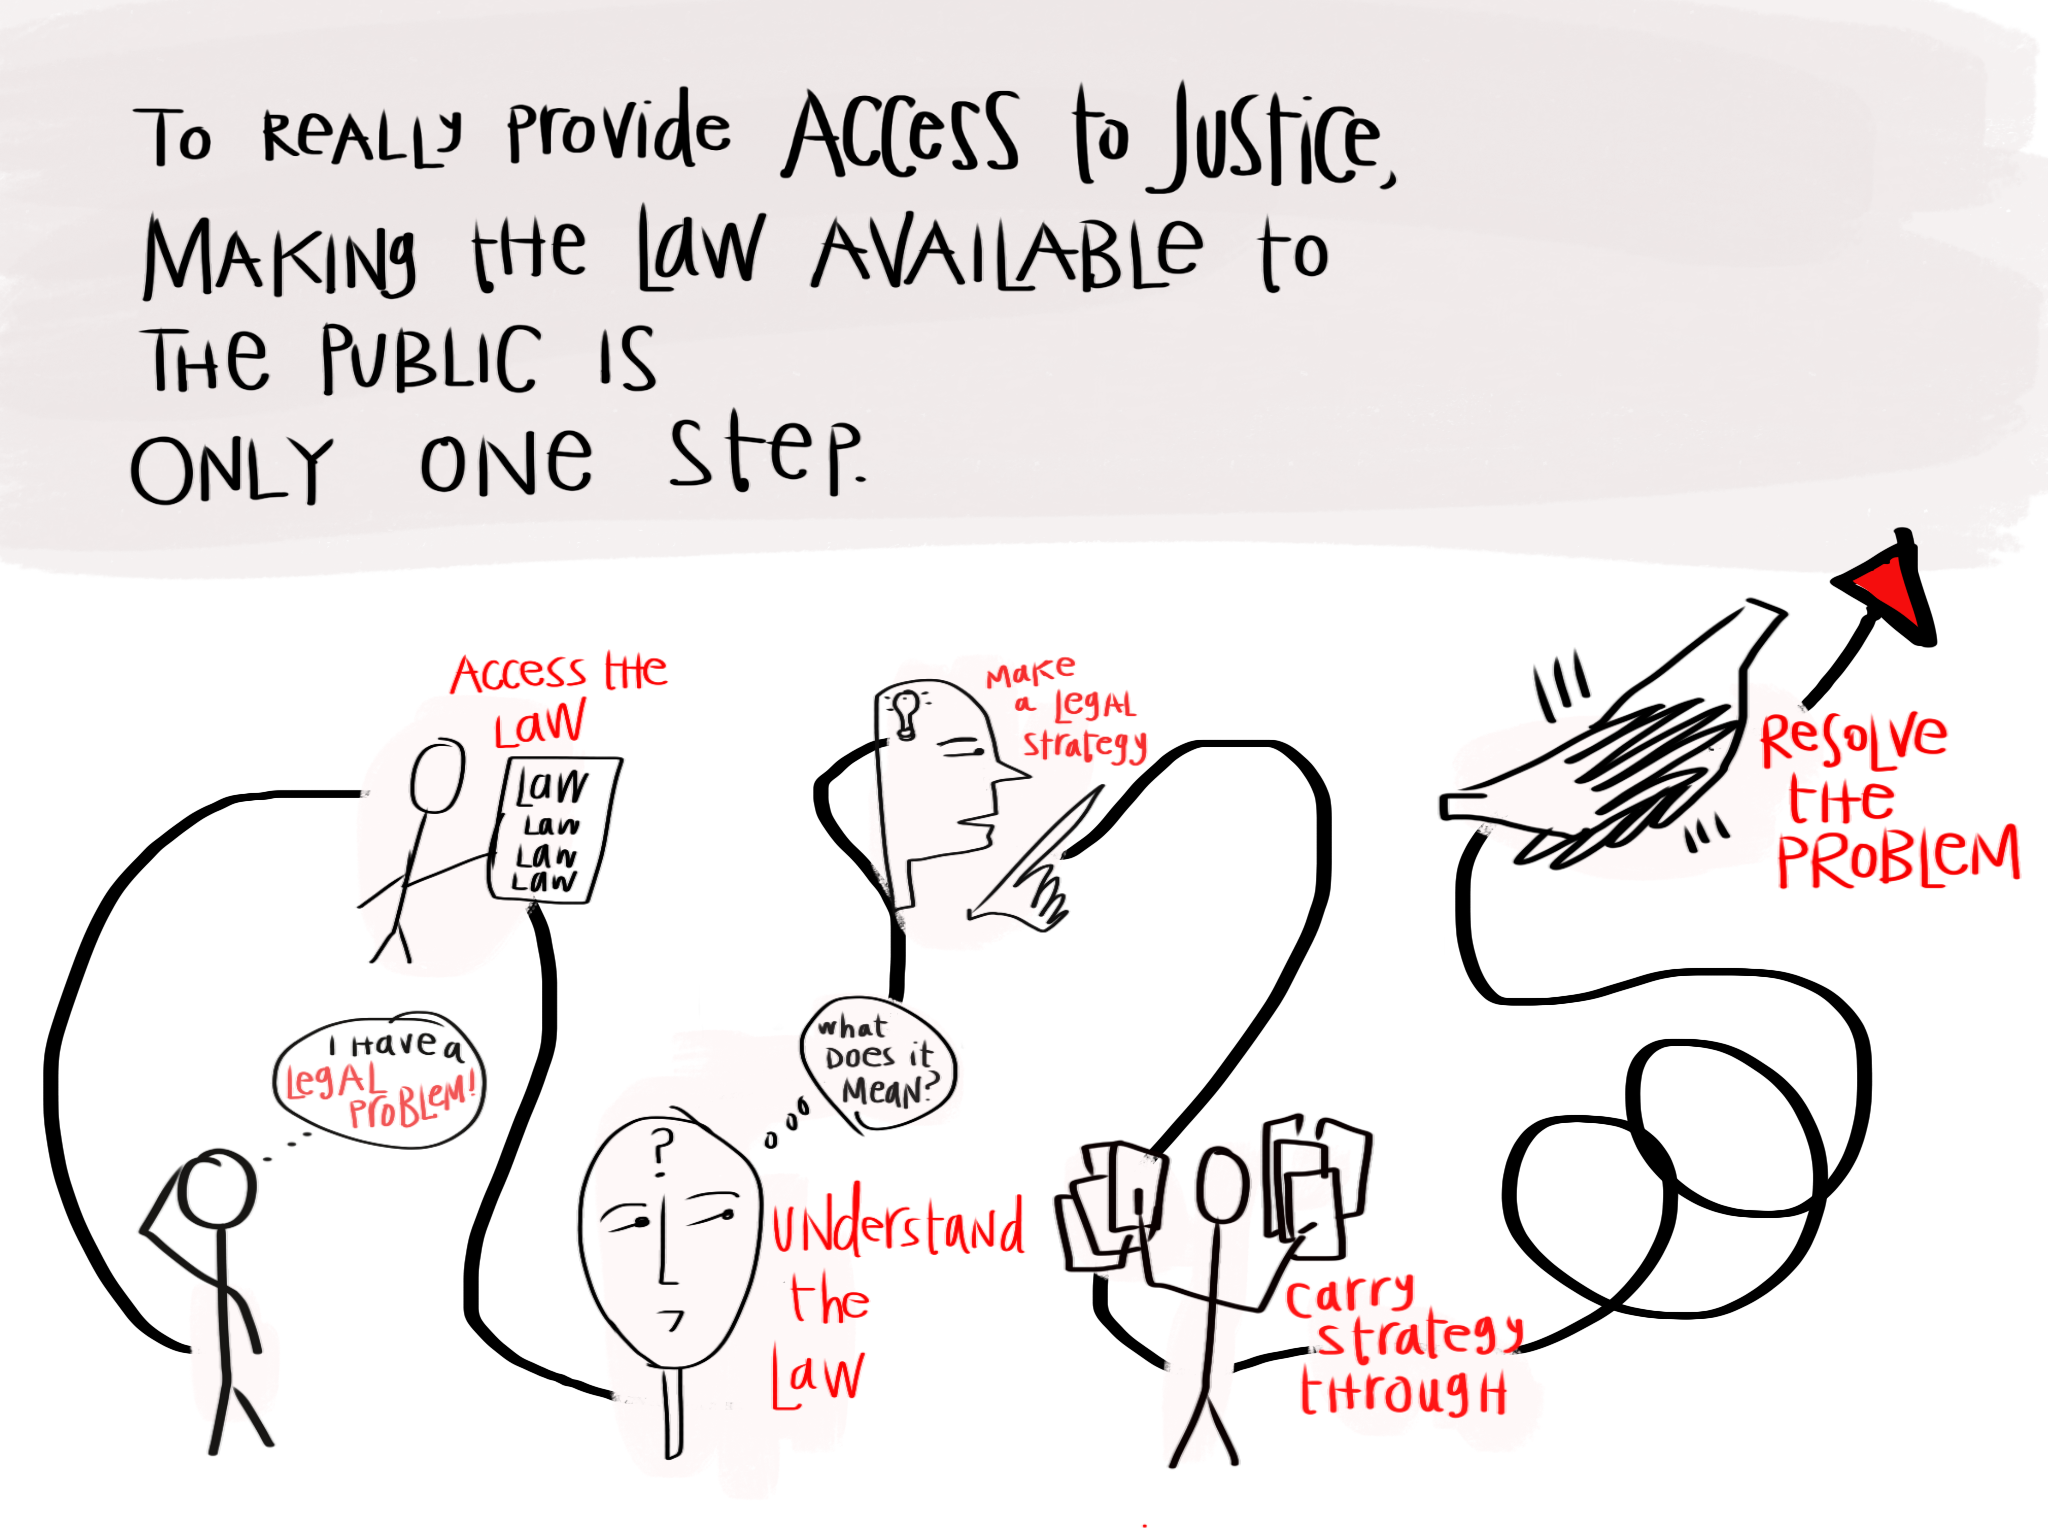 Access to Justice Design Process